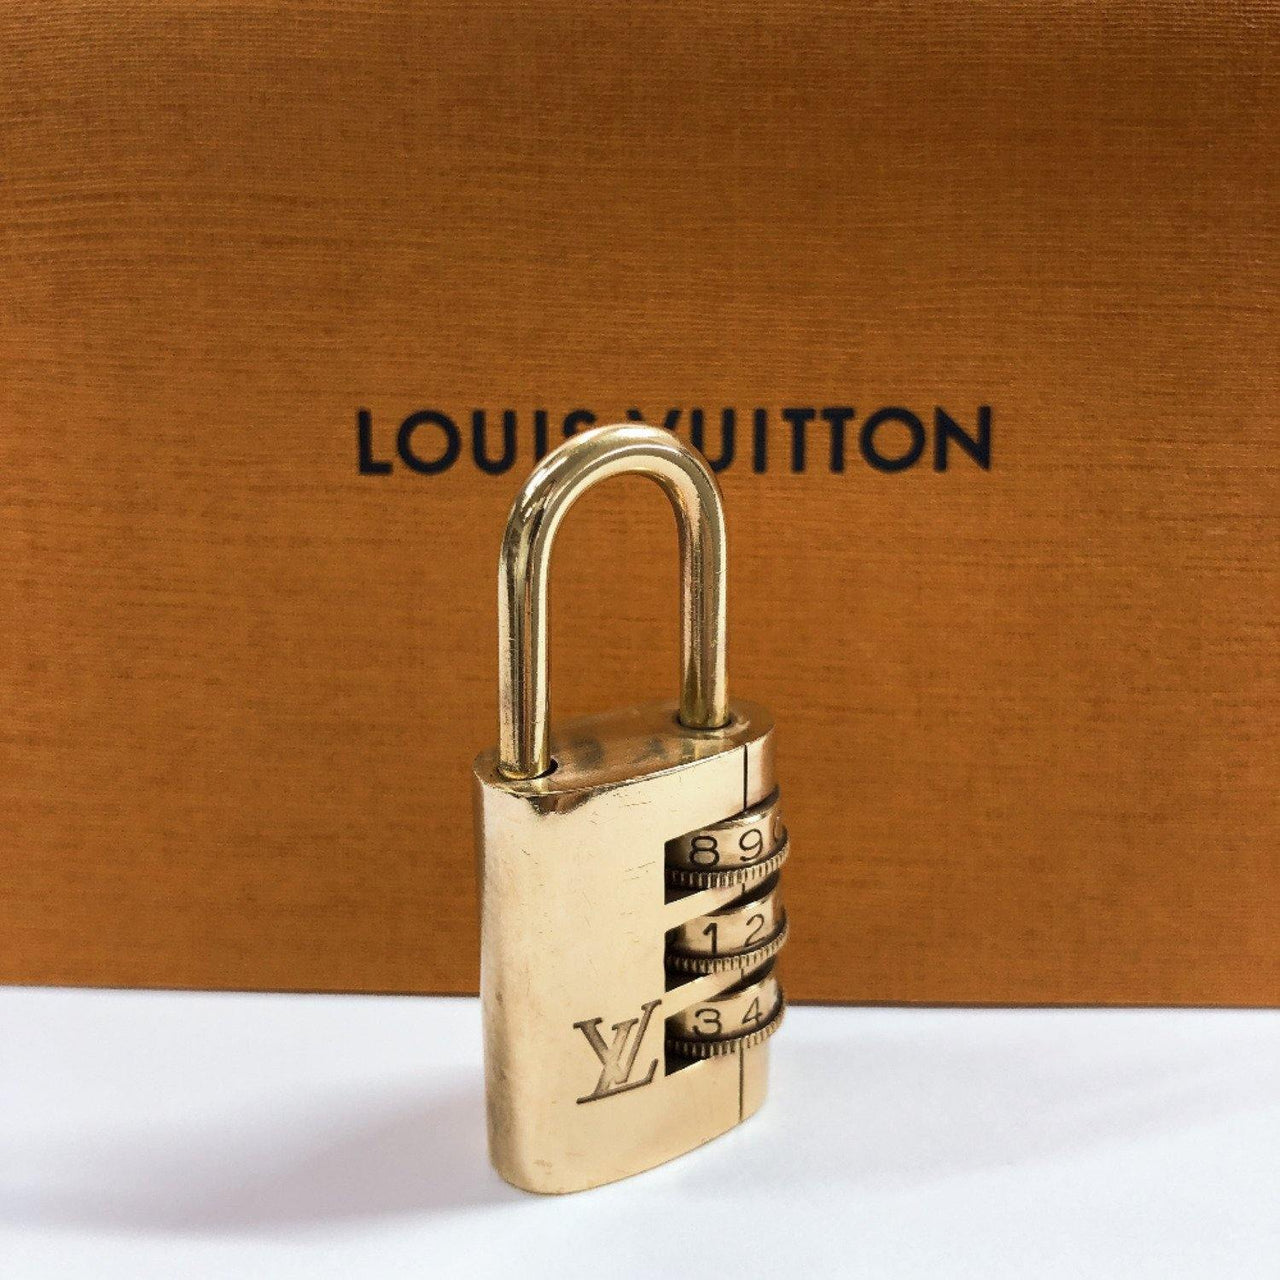 LOUIS VUITTON Cadena Dial padlock padlock brass gold unisex Used